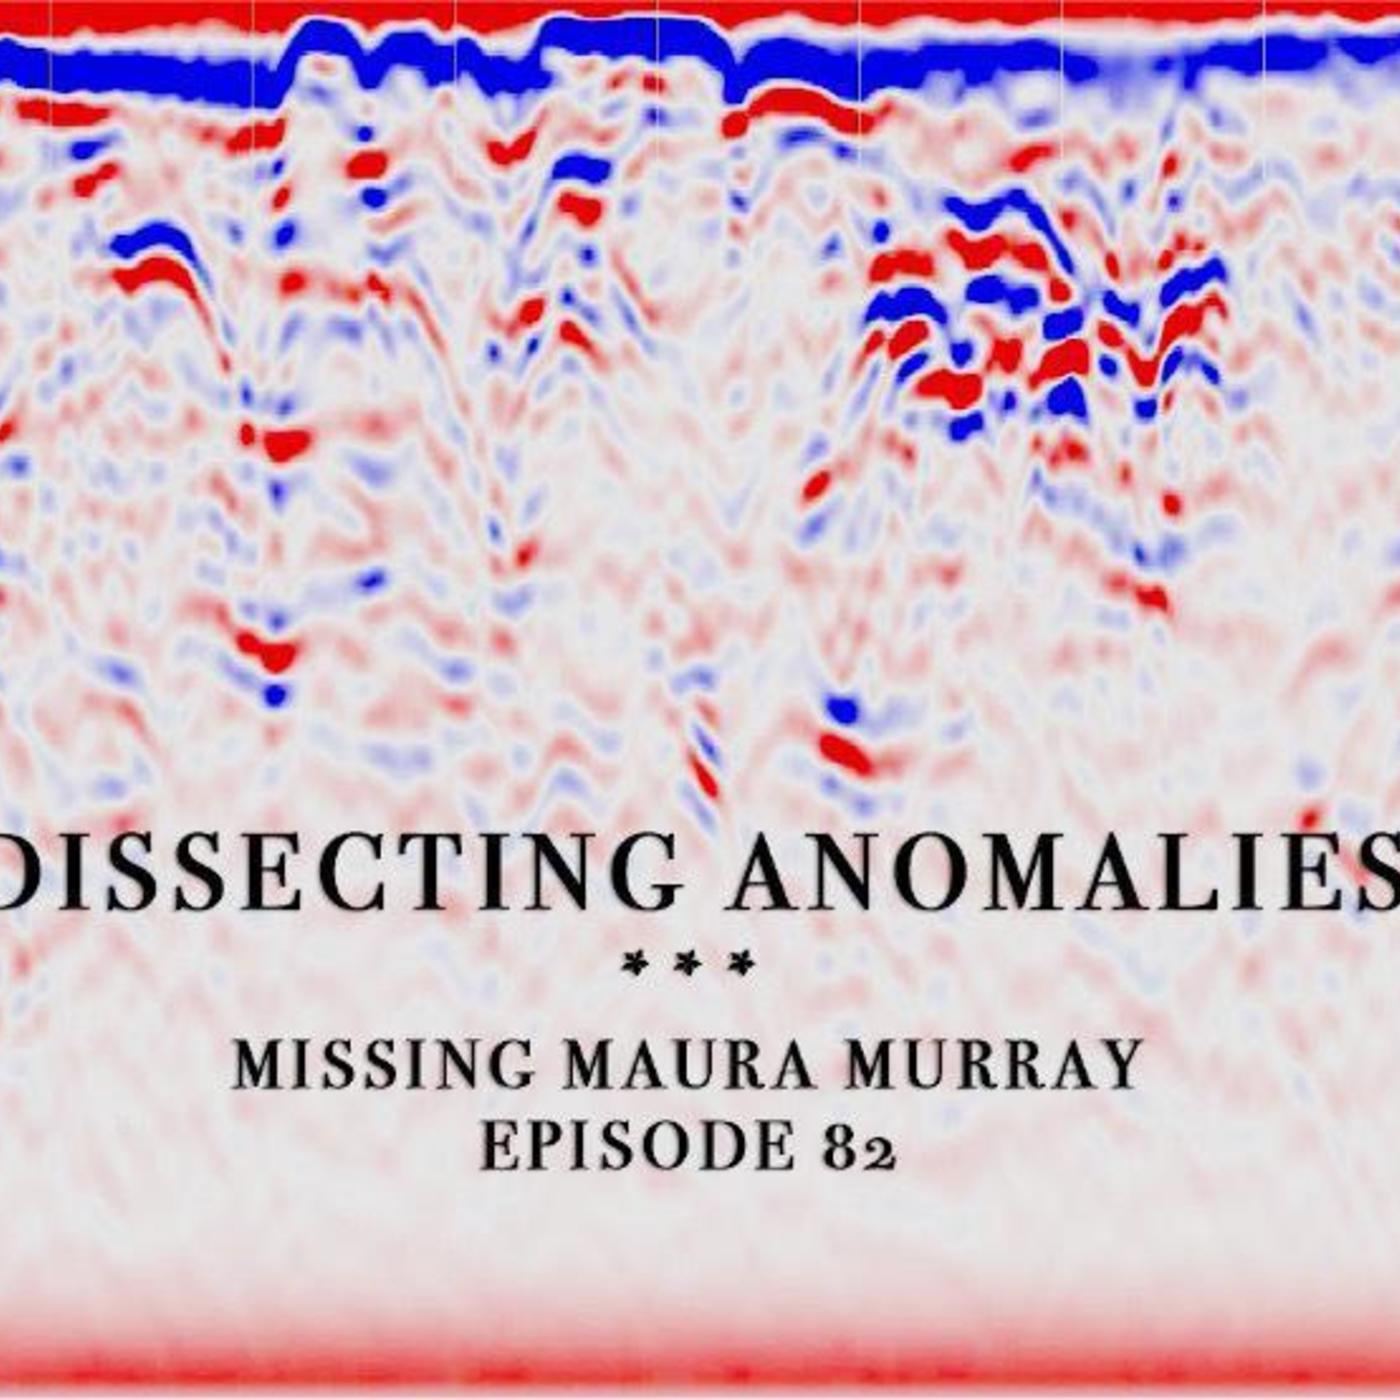 82: Dissecting Anomalies